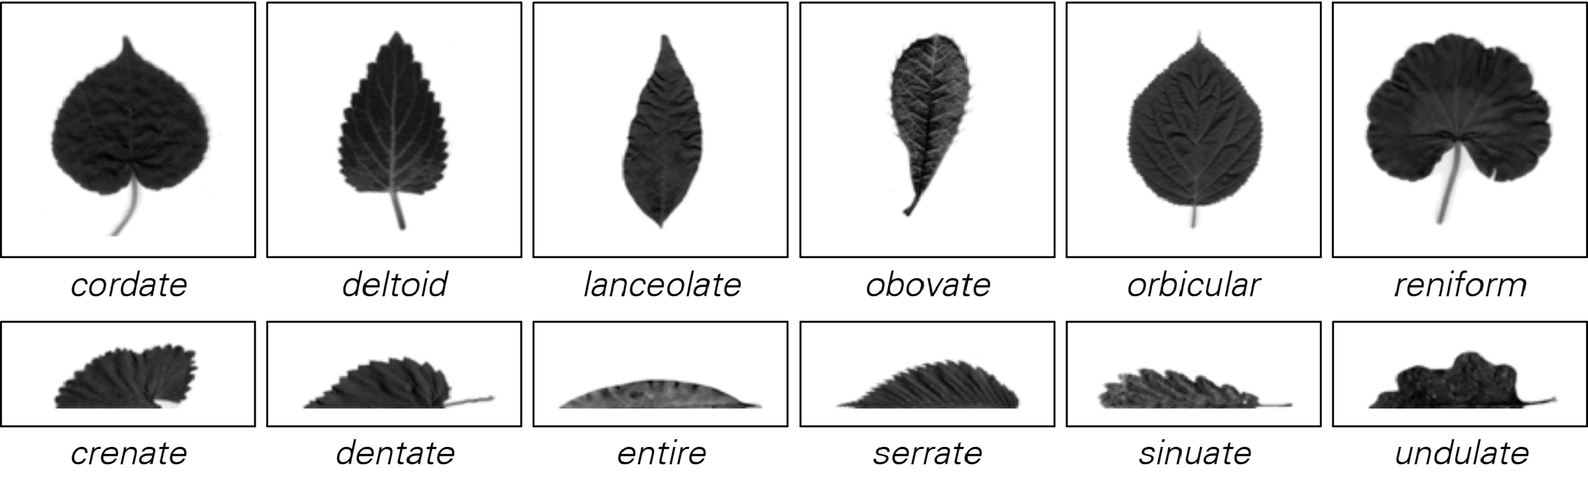 Leaf shapes image 1